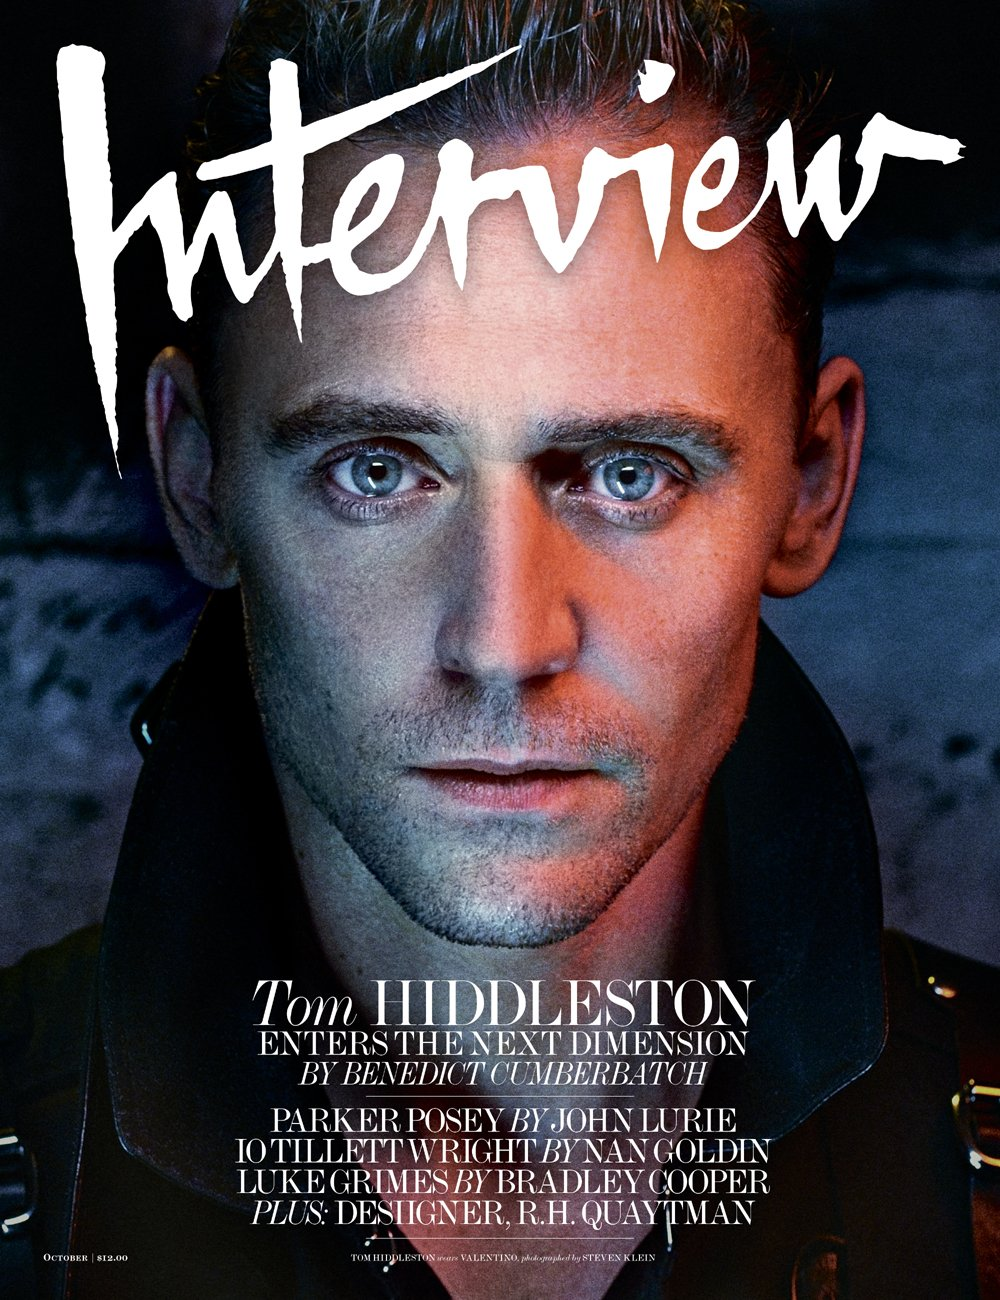 Tom Hiddleston (photographed by Steven Klein) on the cover of Interview magazine's October 4, 2016 issue